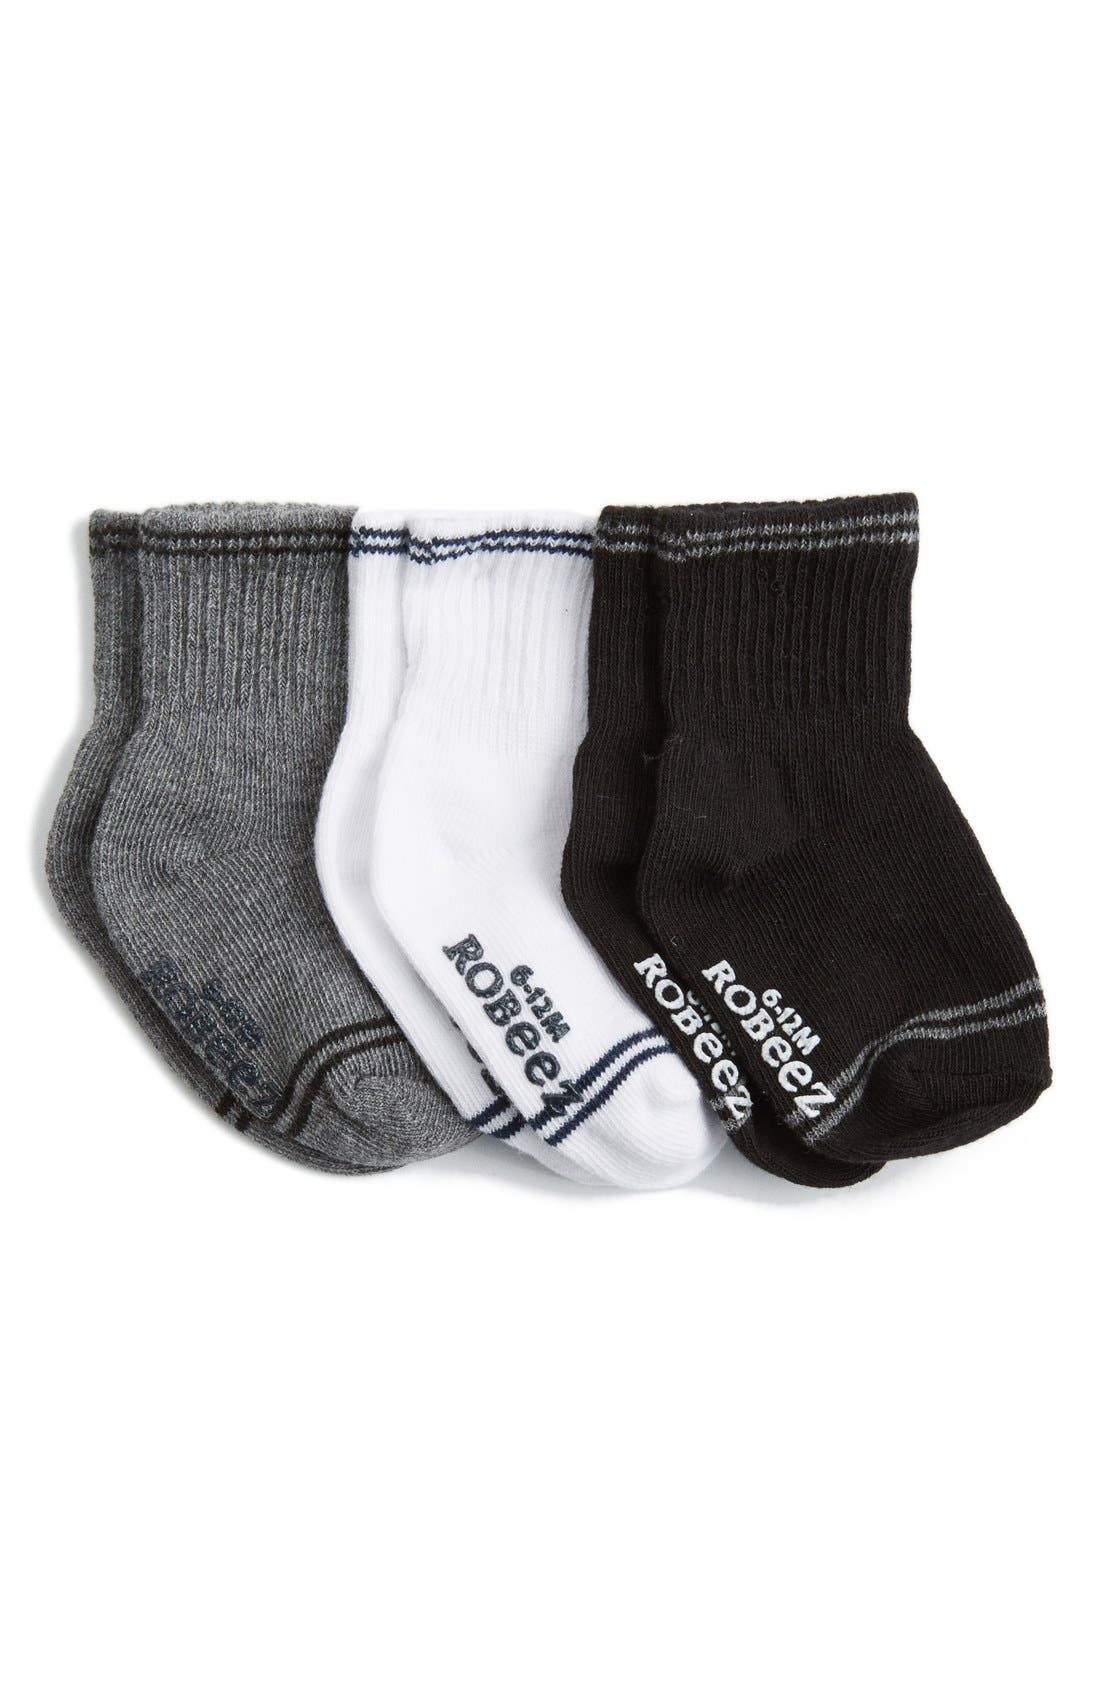 ROBEEZ<SUP>®</SUP> 'Goes with Everything' Ankle Socks, Main, color, 020